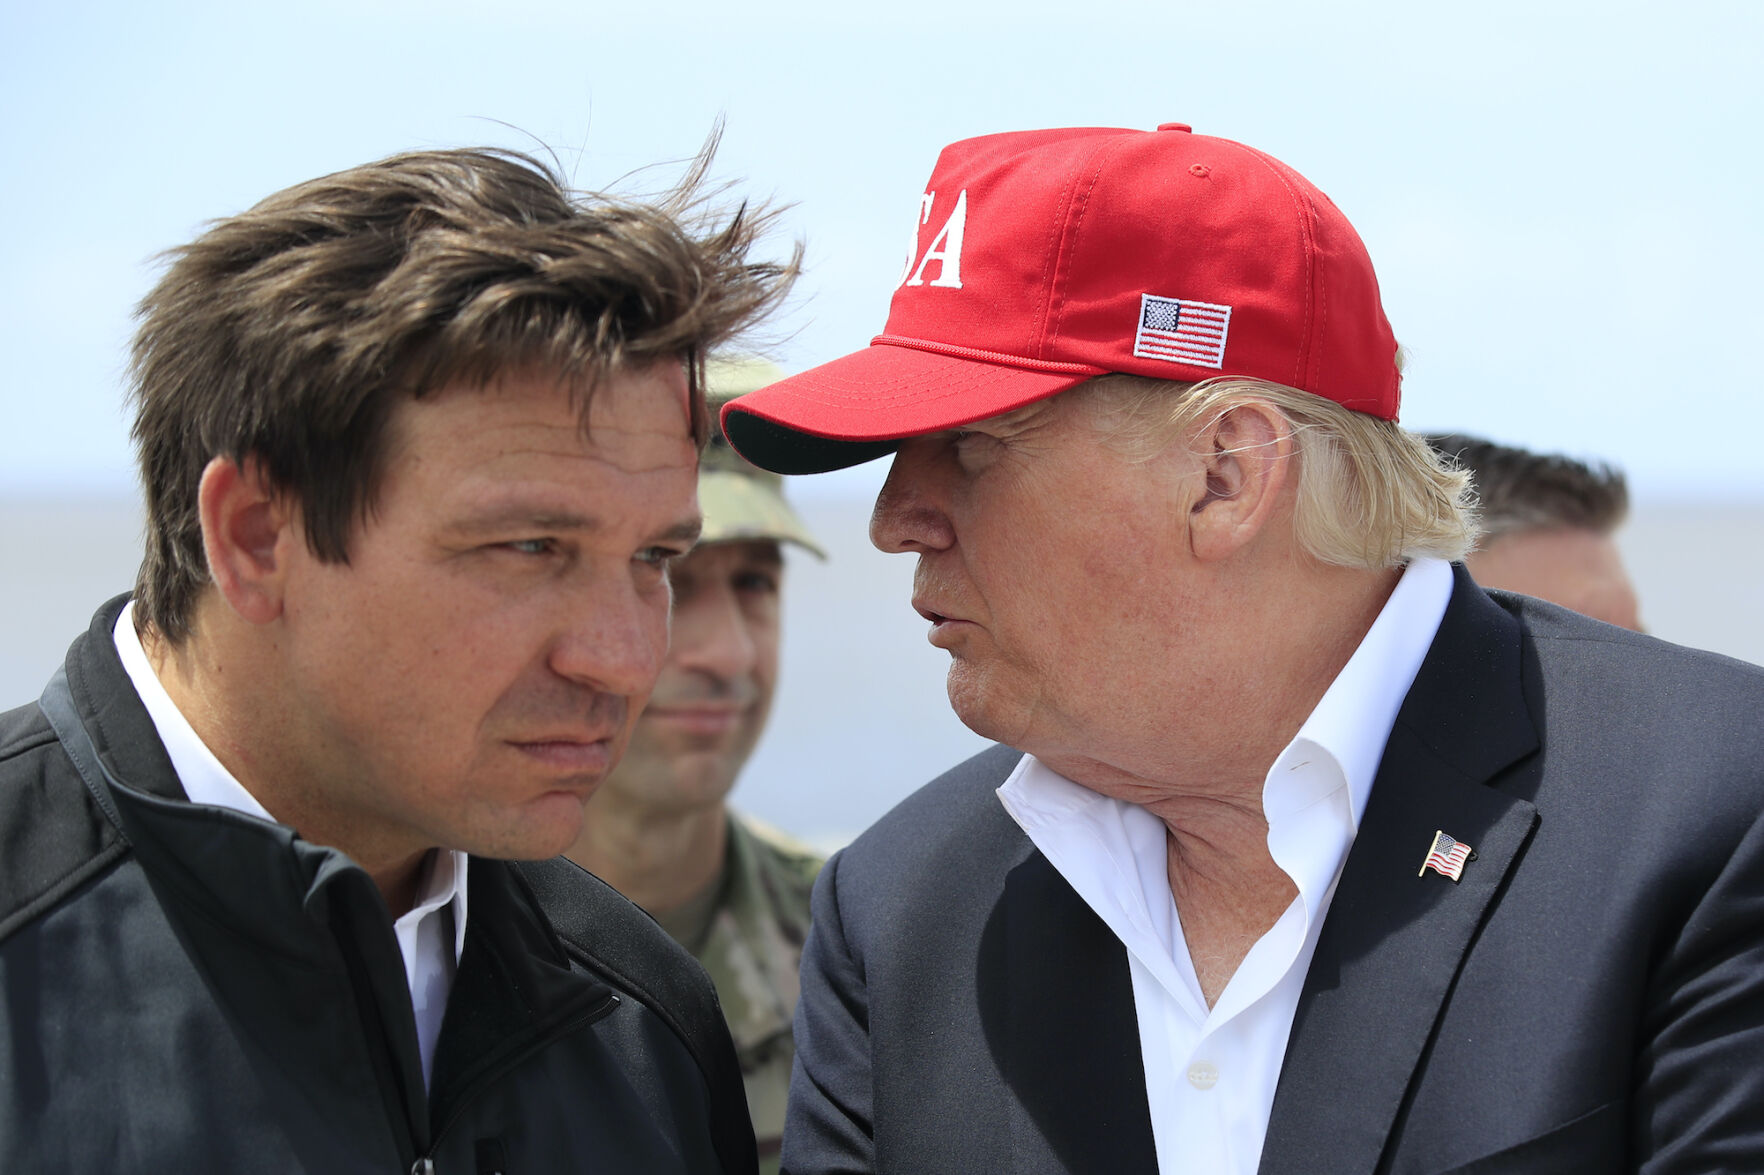 Florida Gov. Ron DeSantis edges out Donald Trump in Western Conservative Summit's presidential straw poll